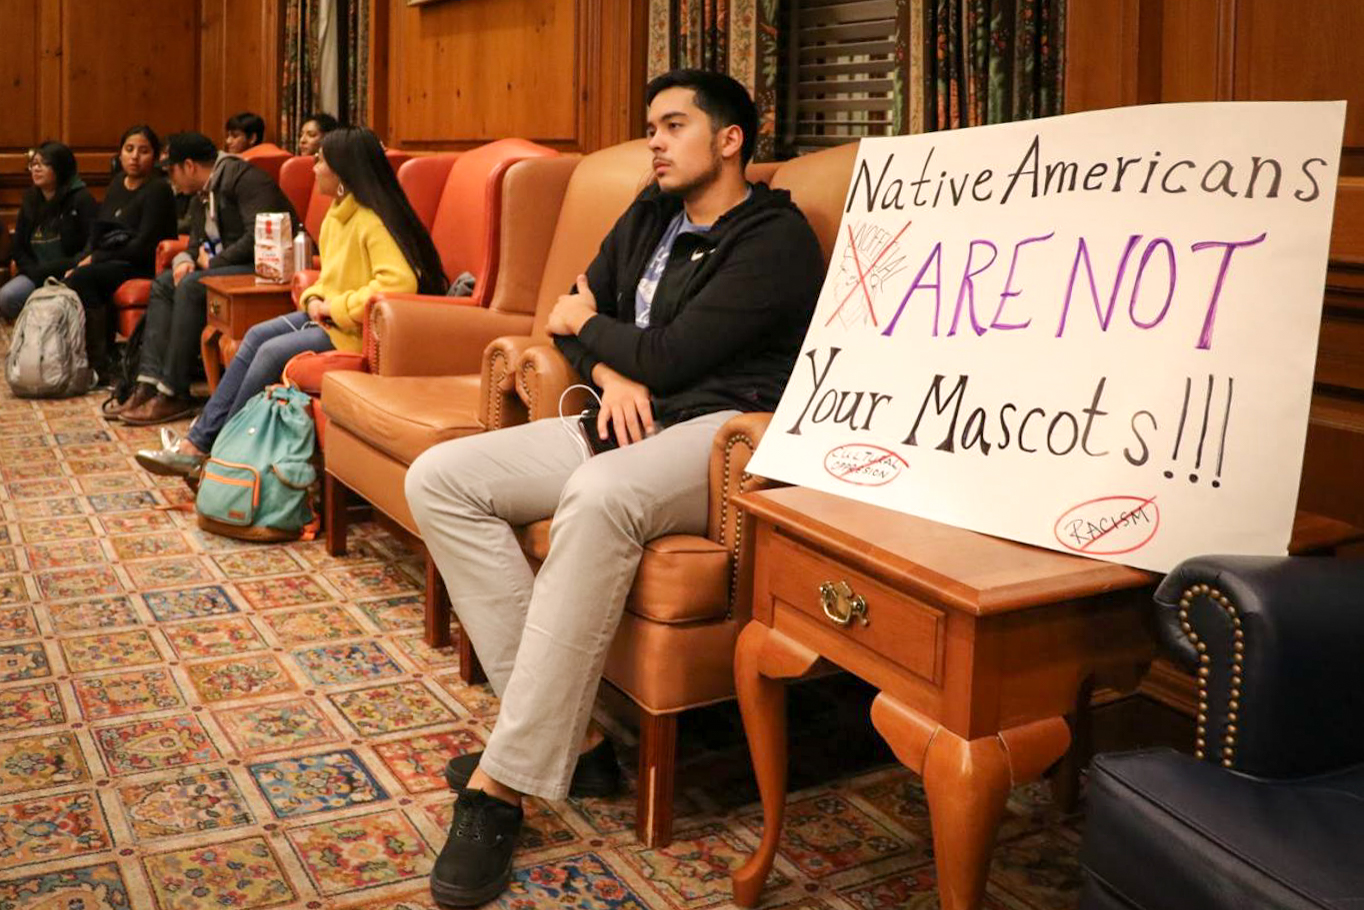 A student sits in on the Illinois Student Government meeting in the Illini Union Pine Room on Wednesday, Oct. 25. The Chief will make an appearance in the Homecoming Parade, so Illinois Student Government is boycotting the parade in support of Native American students.